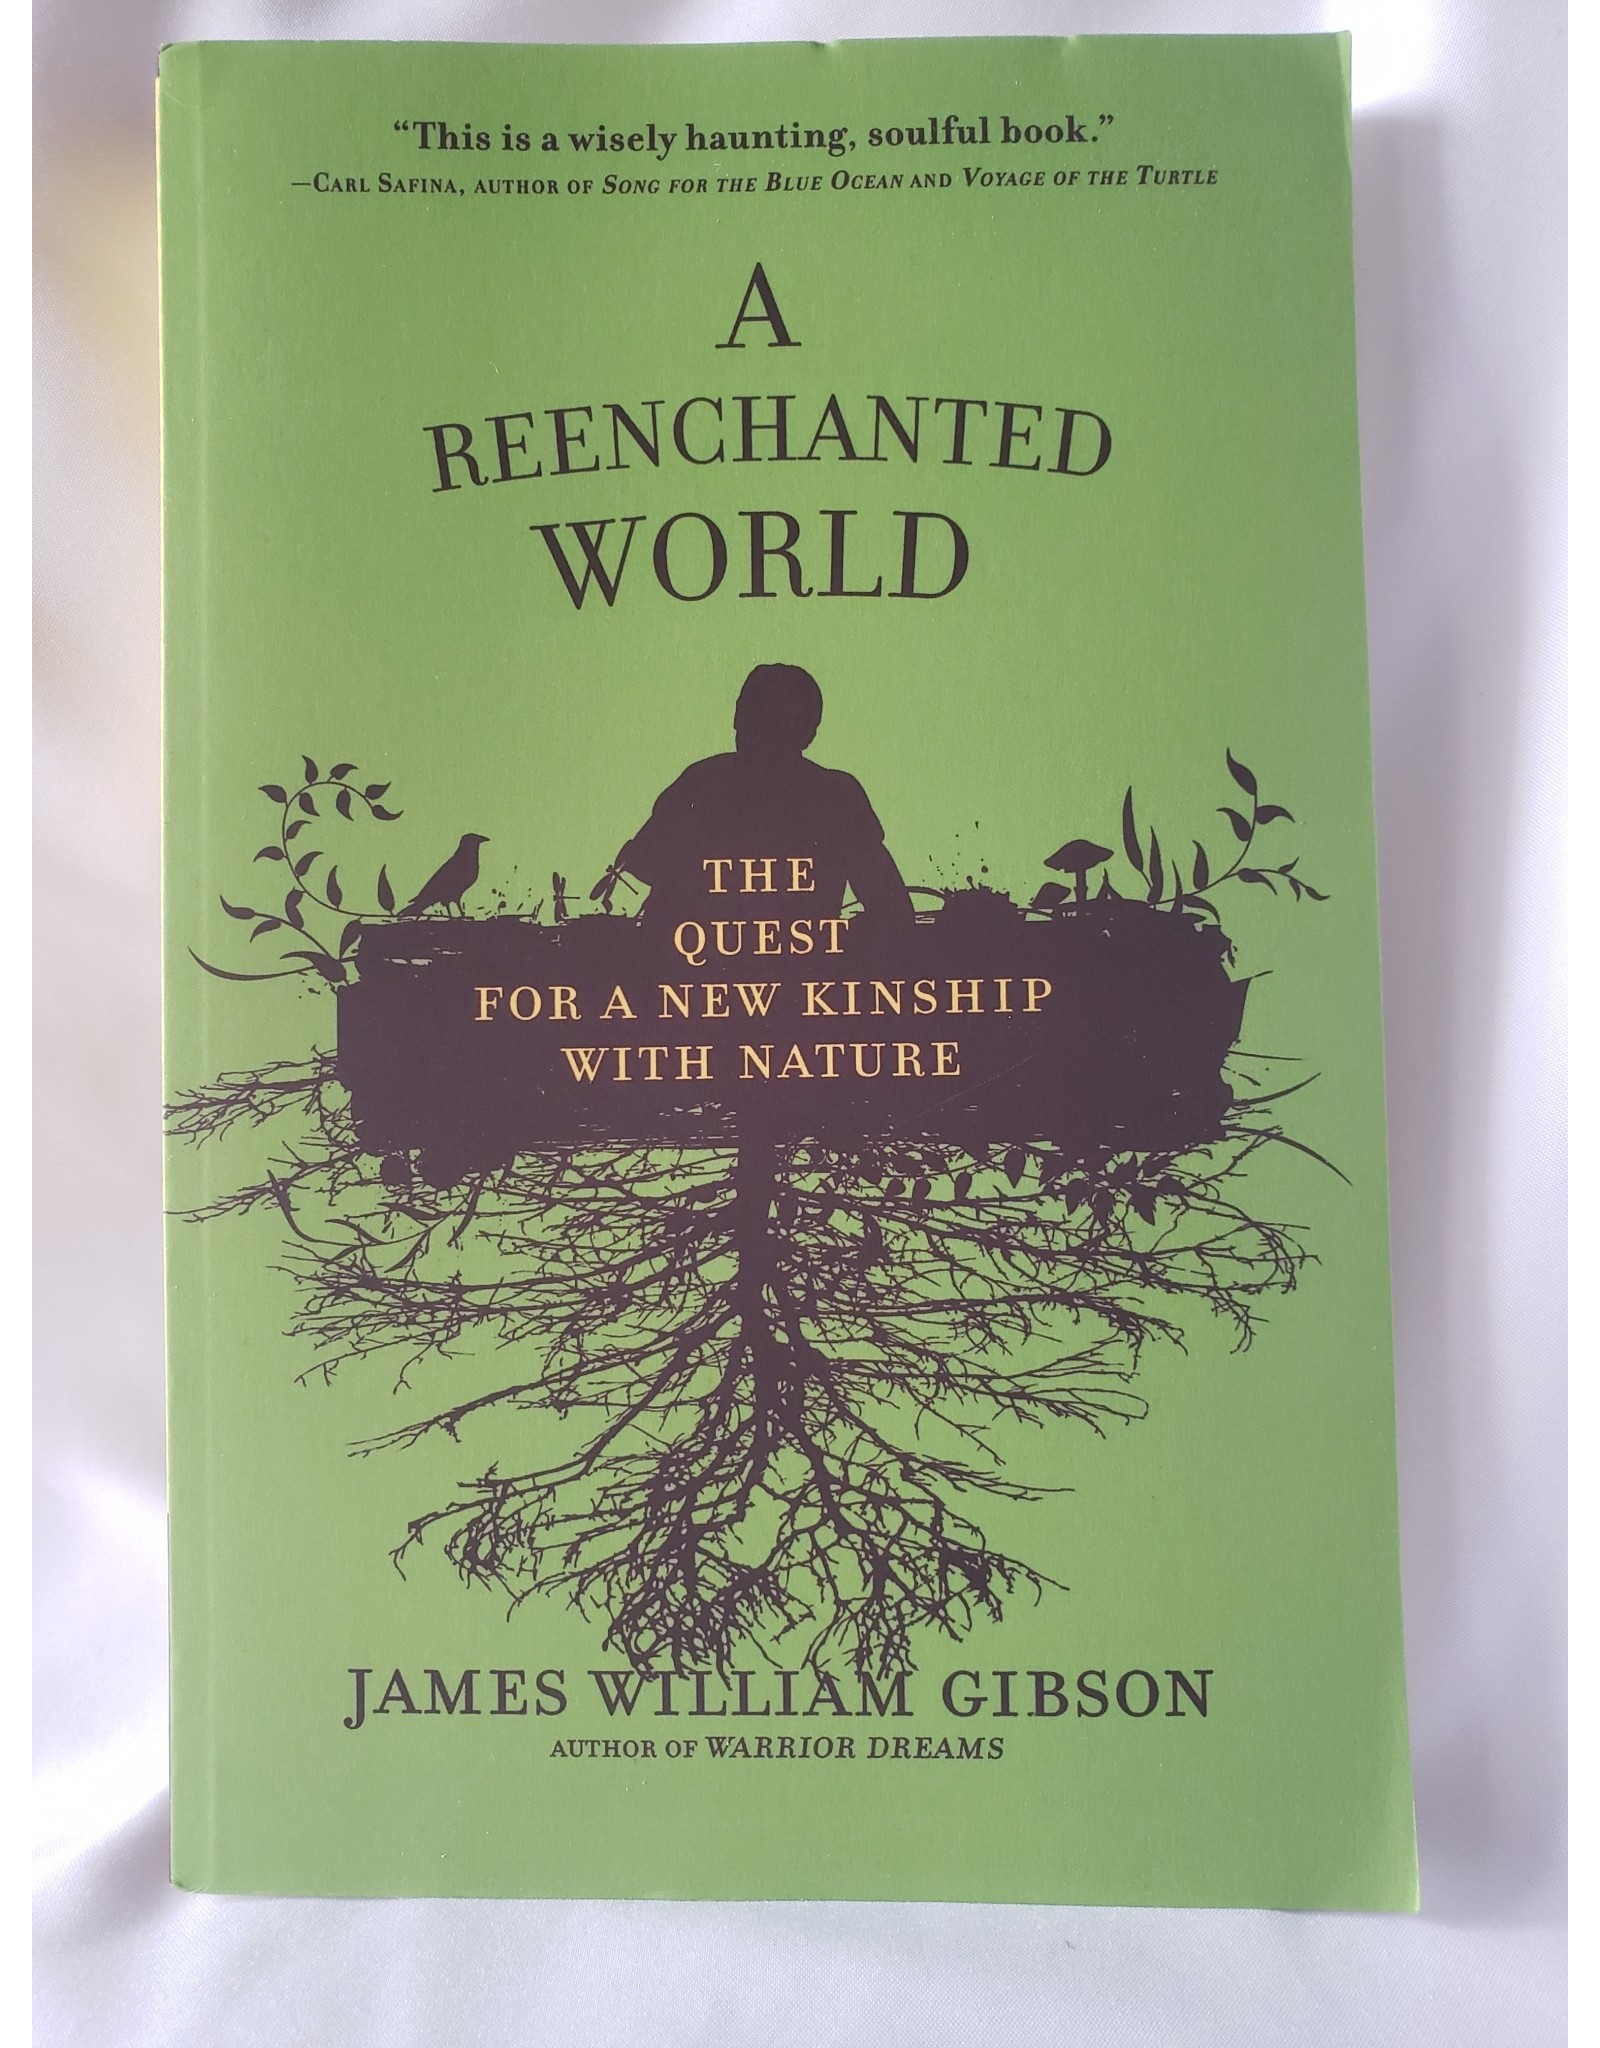 The Reenchanted World